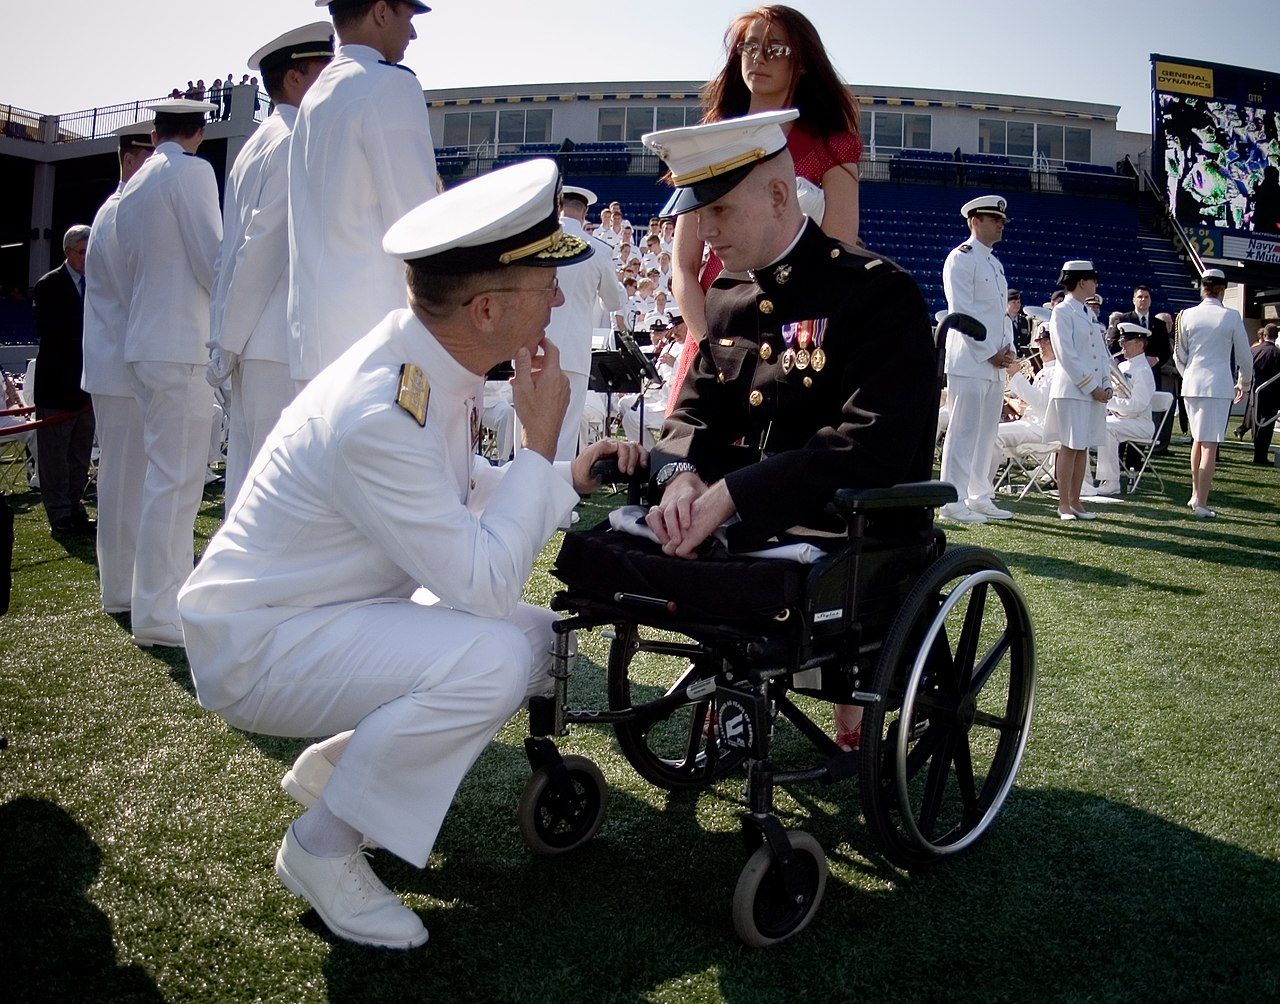 File:US Navy 070525-N-0696M-009 Chief of Naval Operations ...